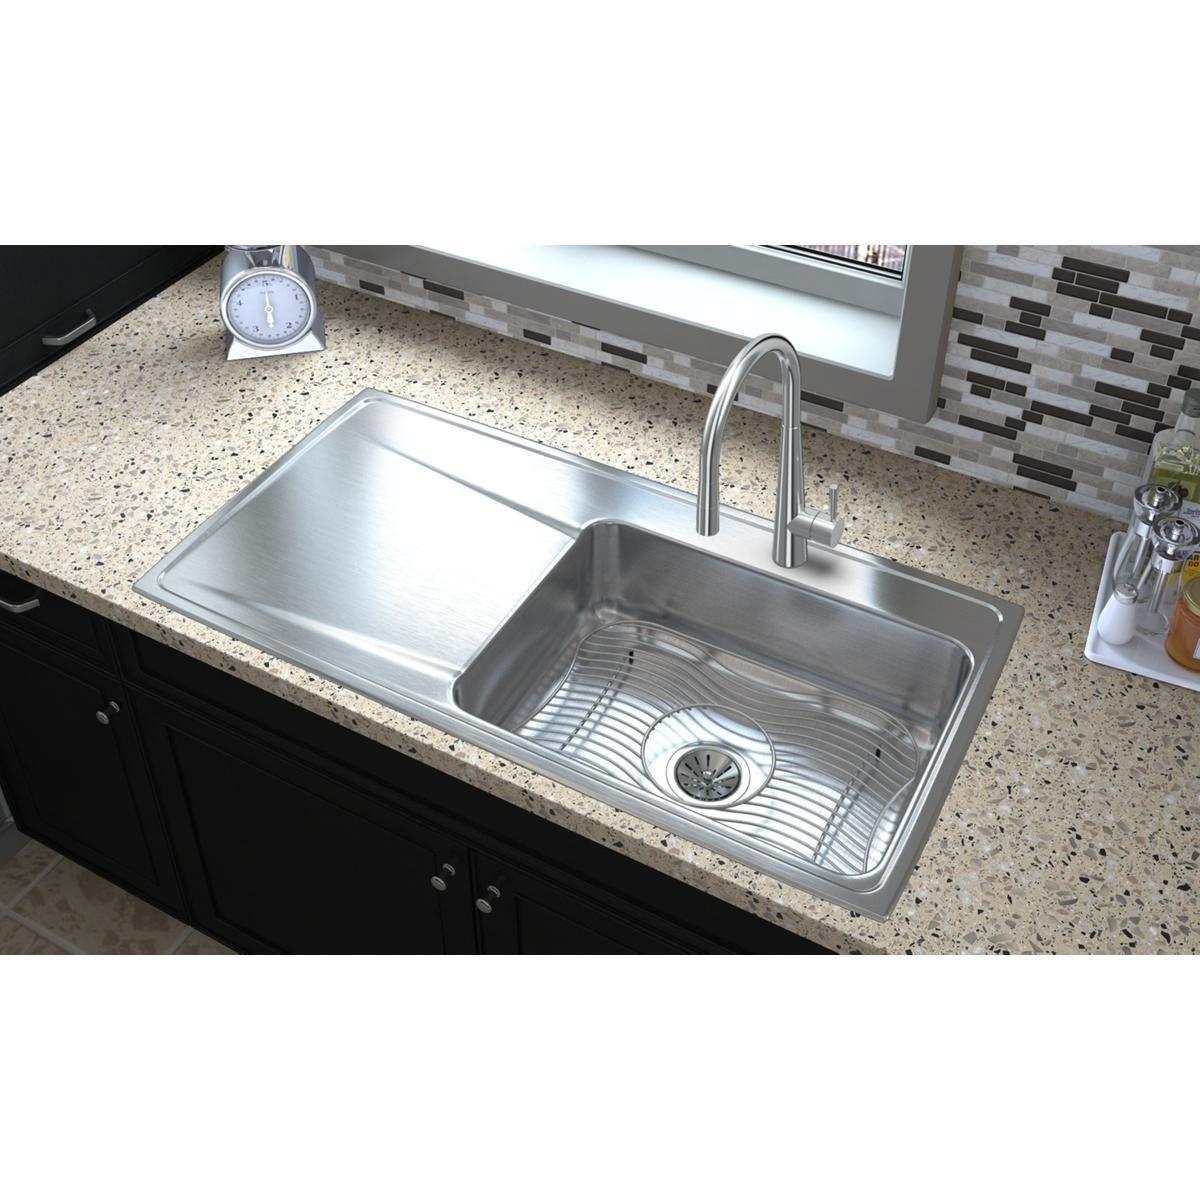 Elkay Lustertone Classic Stainless Steel 43 X 22 X 7 5 8 Single Bowl Drop In Sink With Drainboard On Sale Overstock 9276025